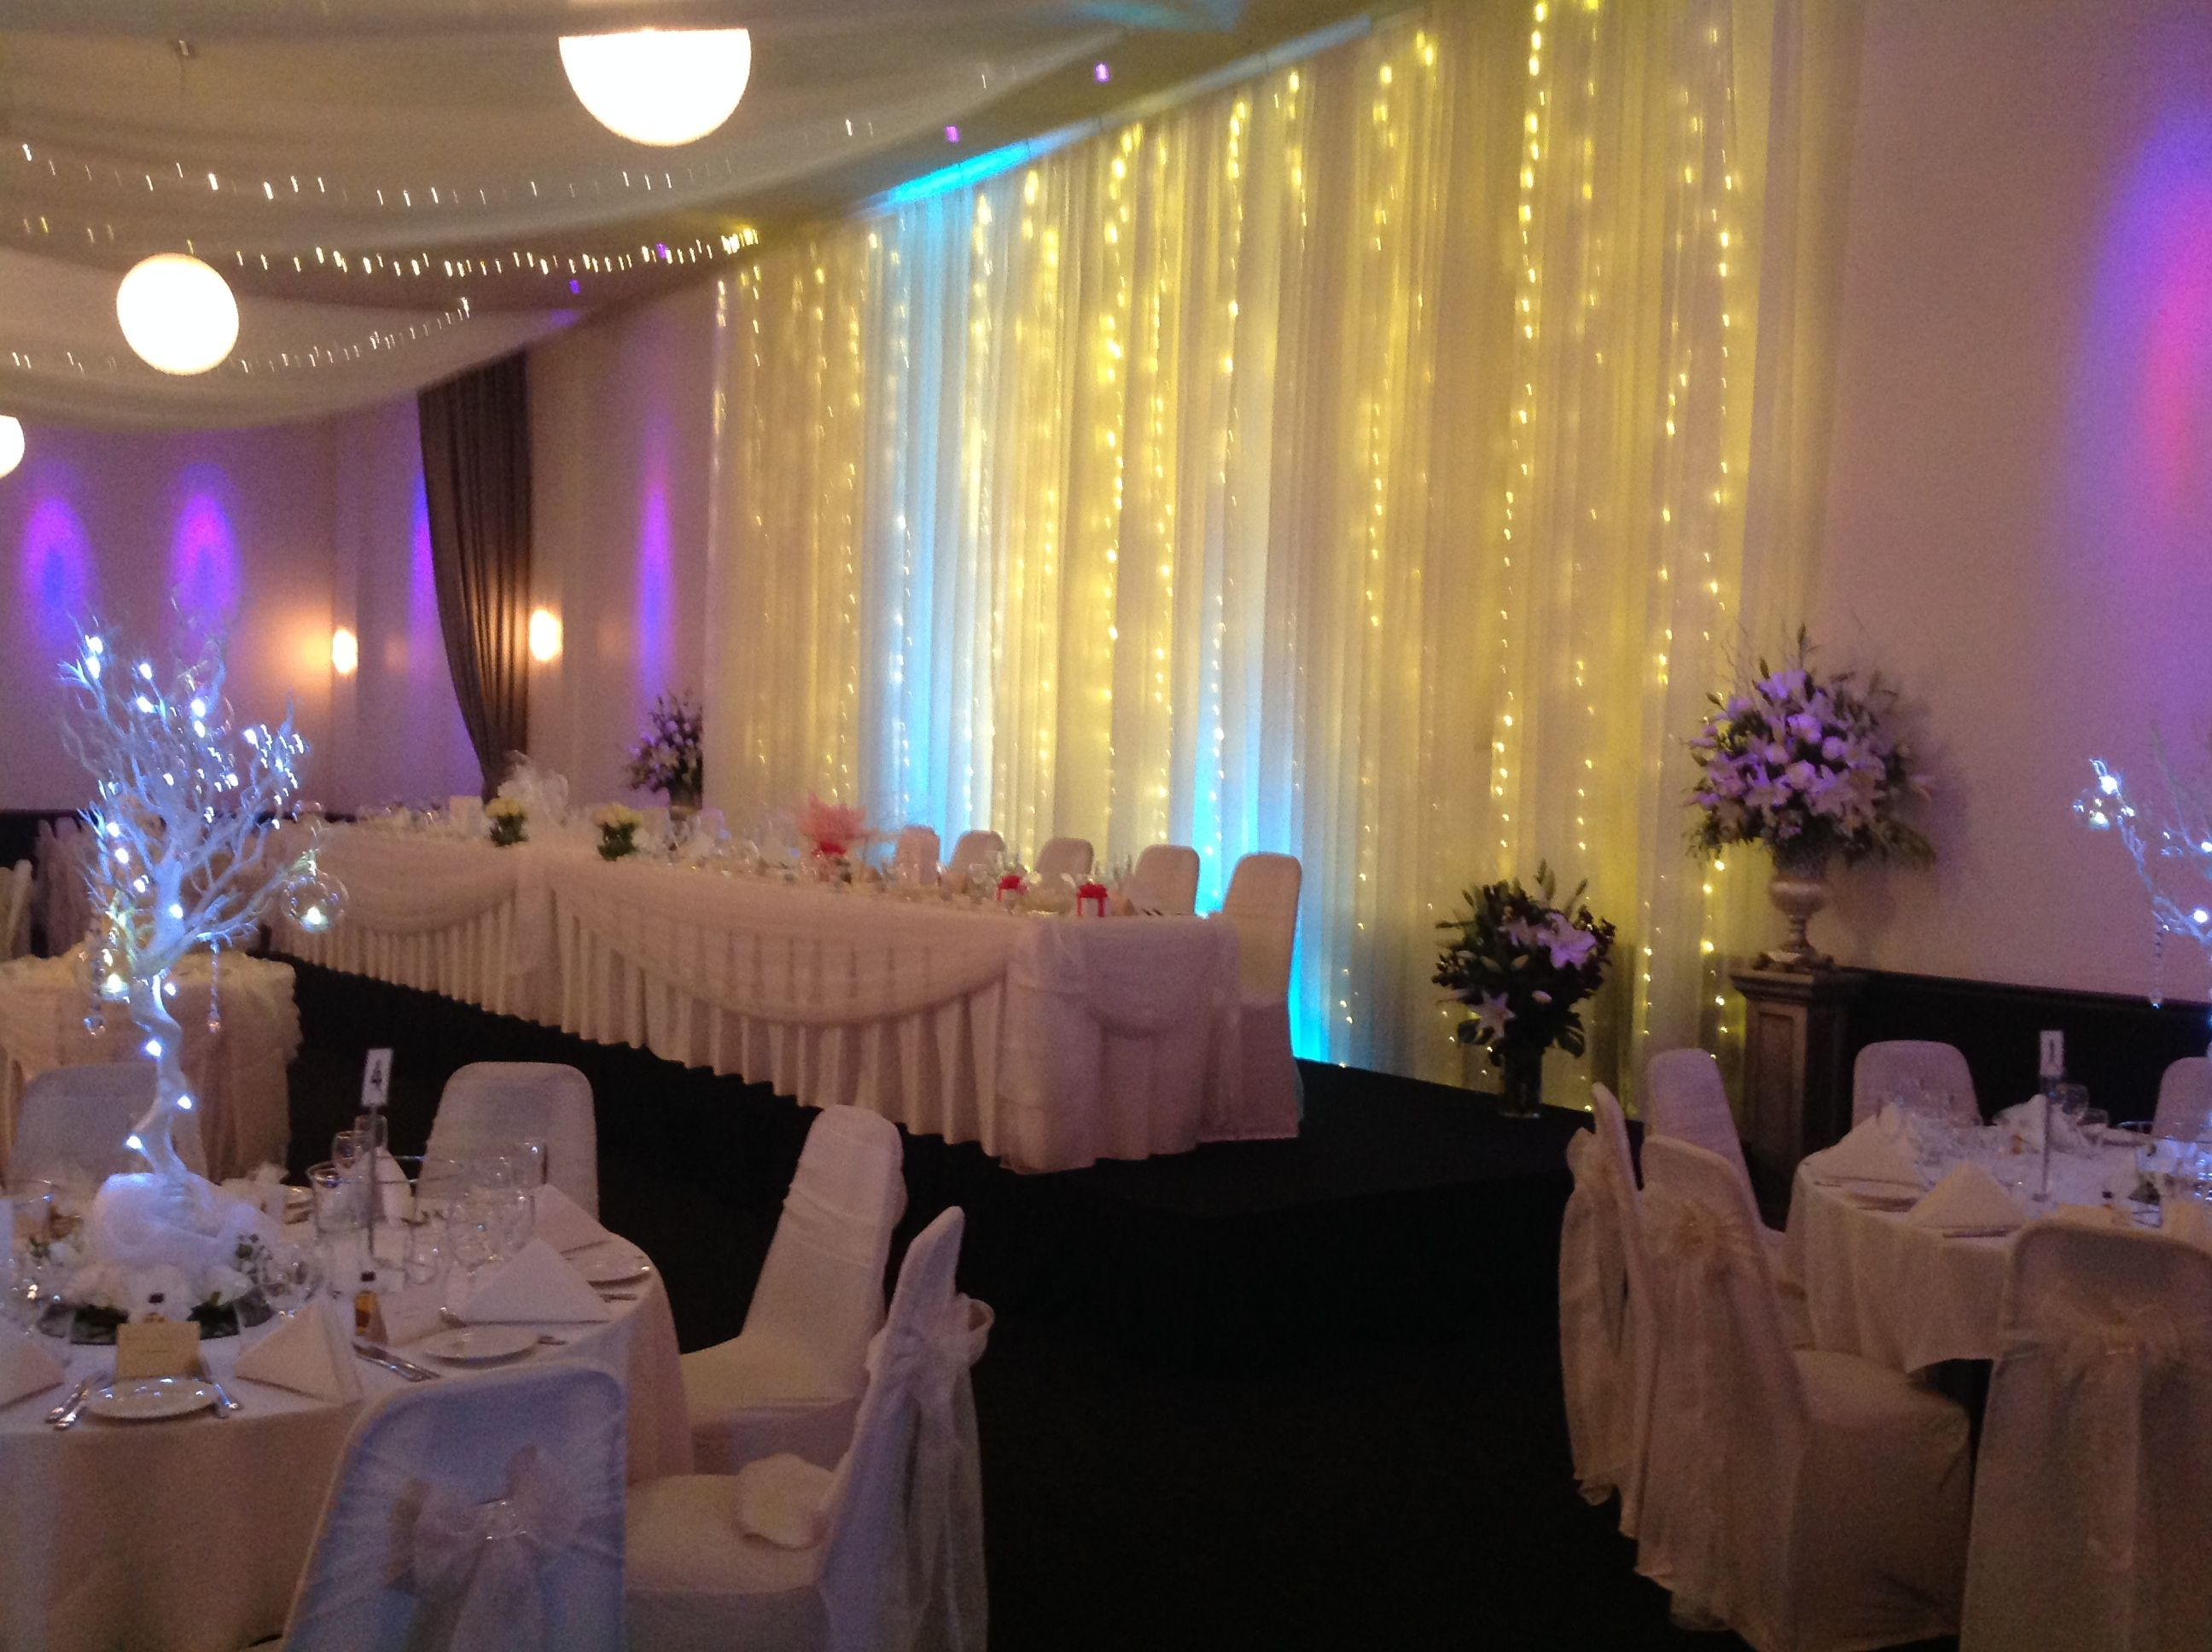 Add sparkle to your bridal table backdrop with strings of